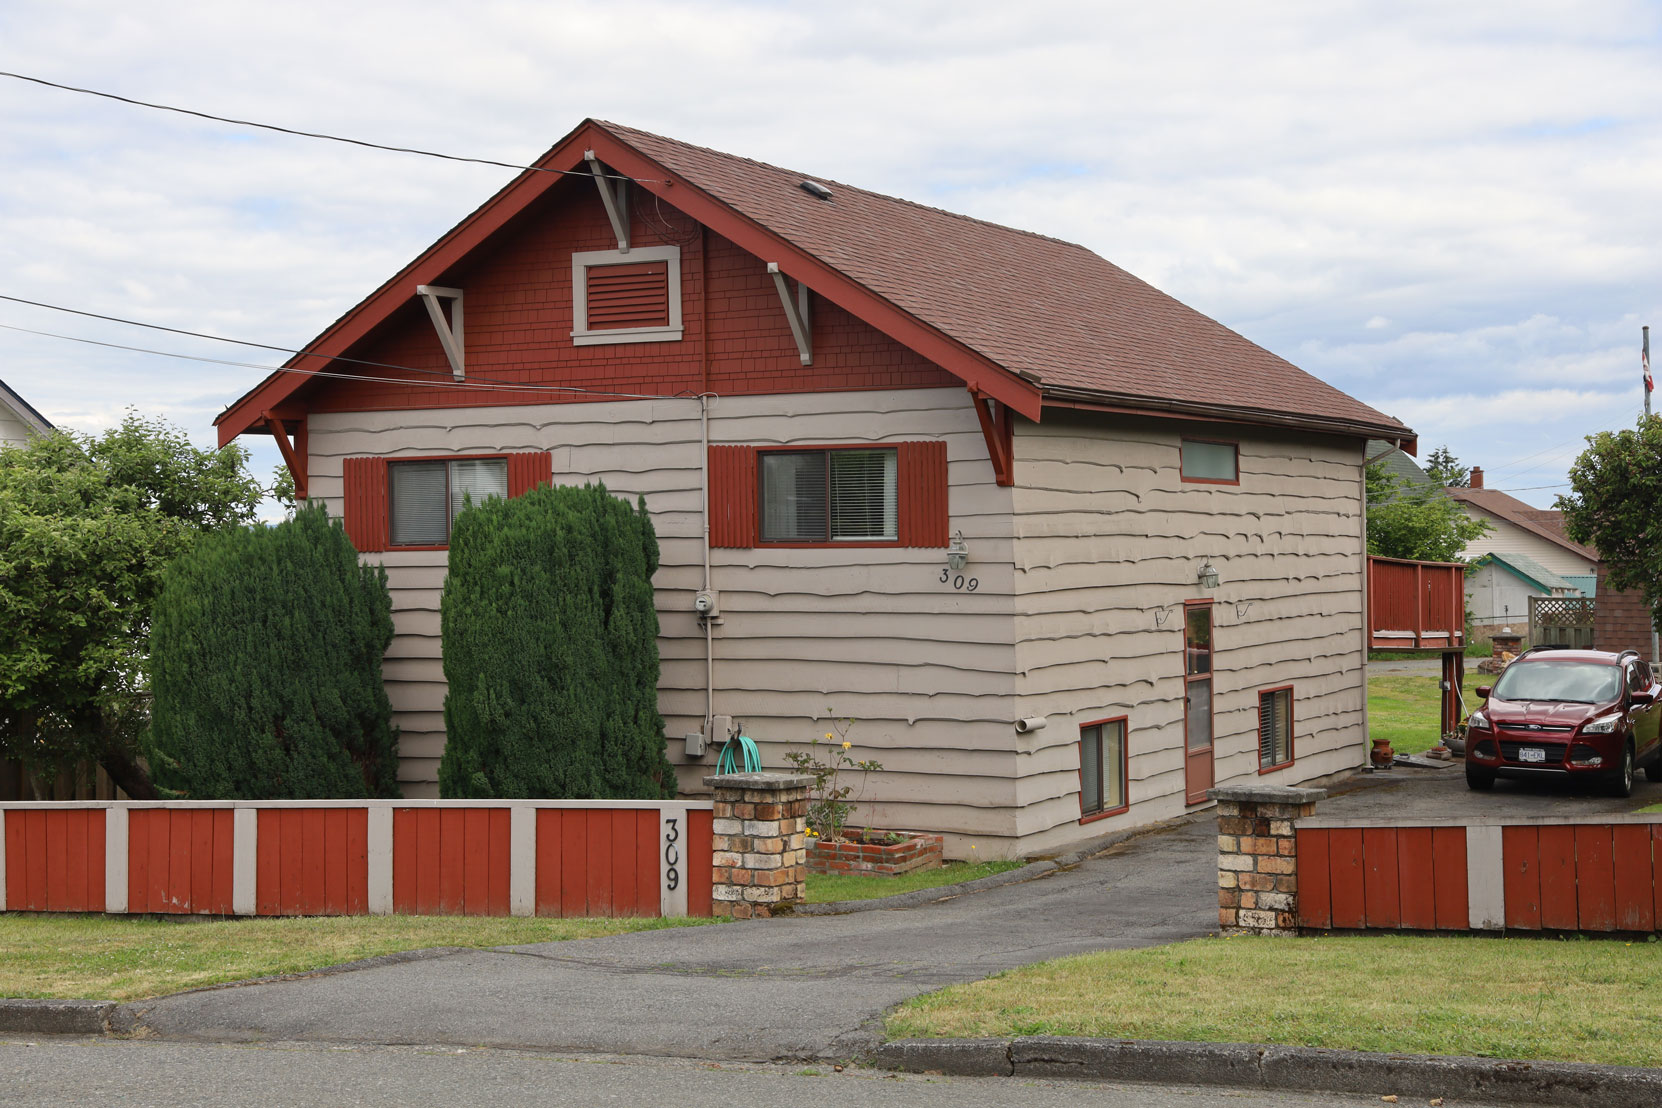 309 Methuen Street, Ladysmith, BC, built in 1925 (photo: Mark Anderson)